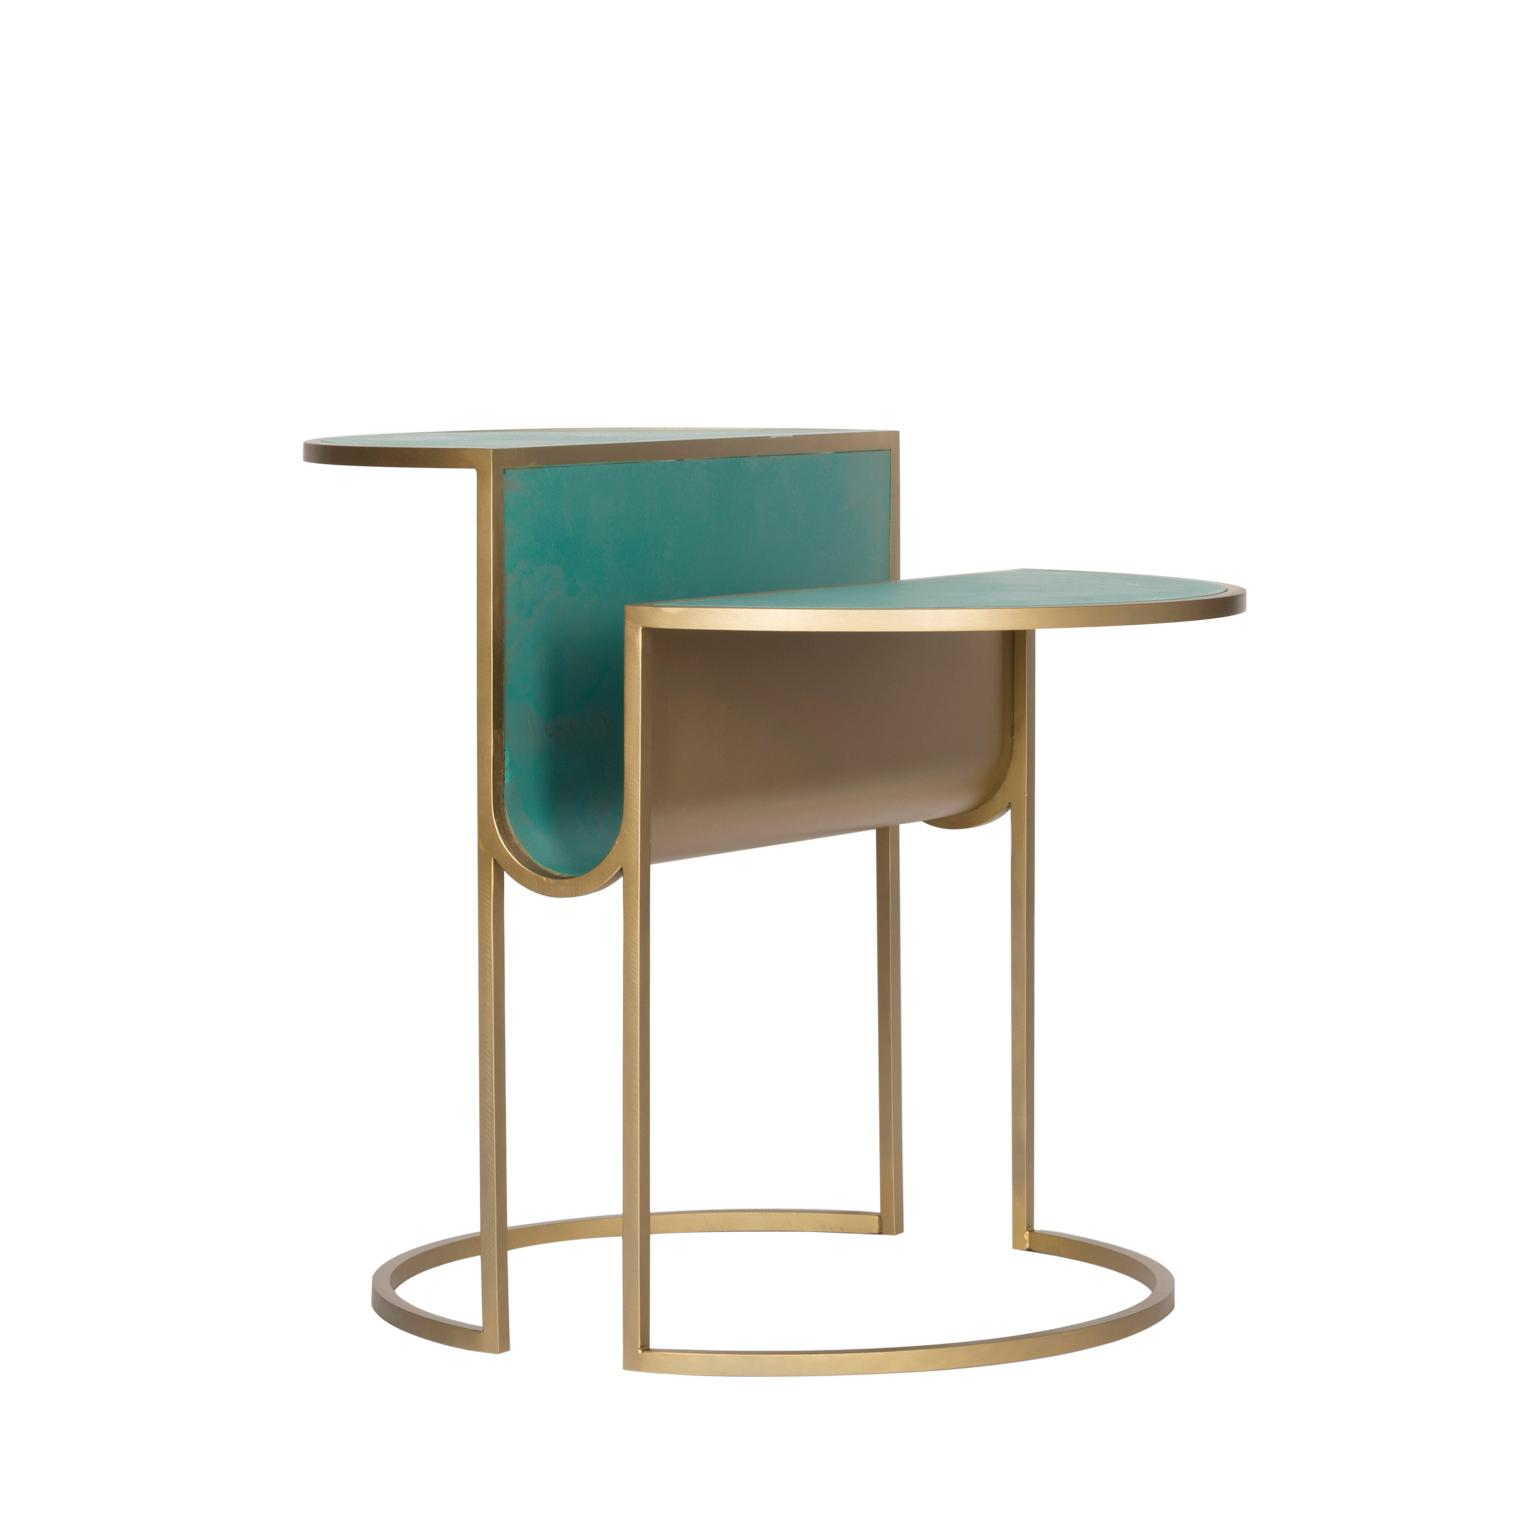 2019 Design Trends – The New Coffee and Side Tables by Lara Bohinc lara bohinc 2019 Design Trends – The New Coffee and Side Tables by Lara Bohinc The Orbit Tea table Bohinc Studio 1 master